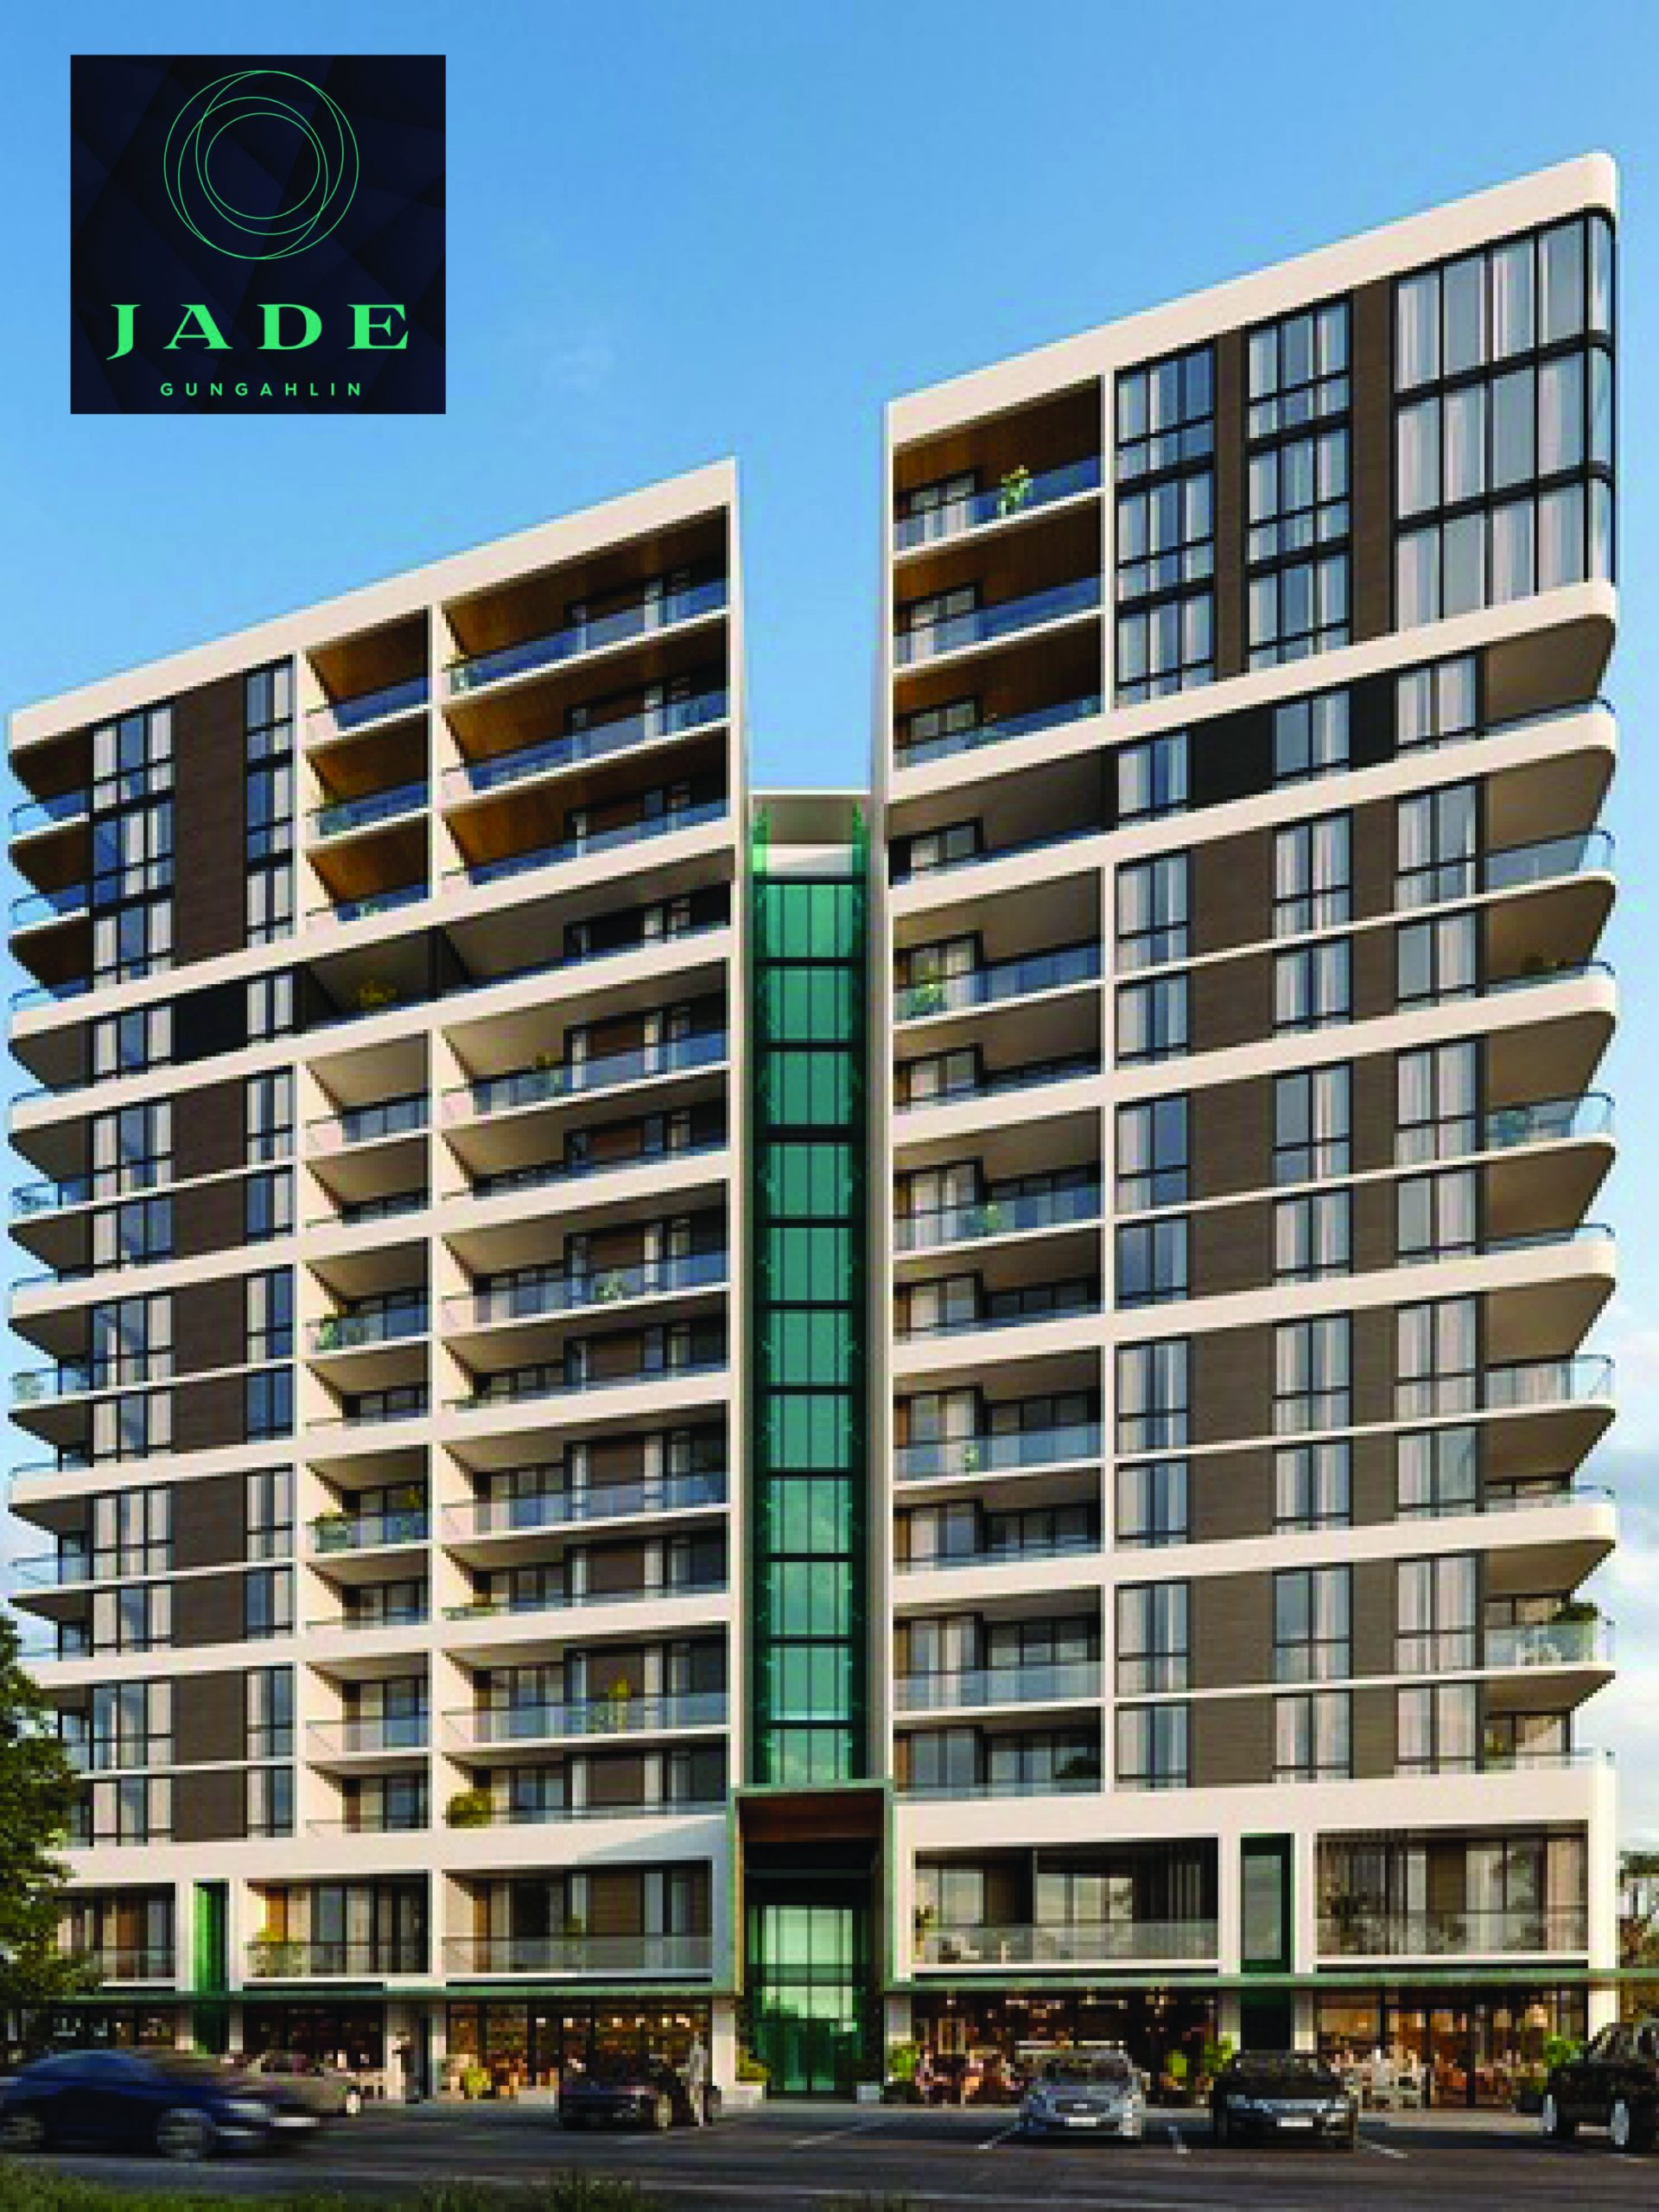 Jade_Gungahlin_Blog_Feature_Image